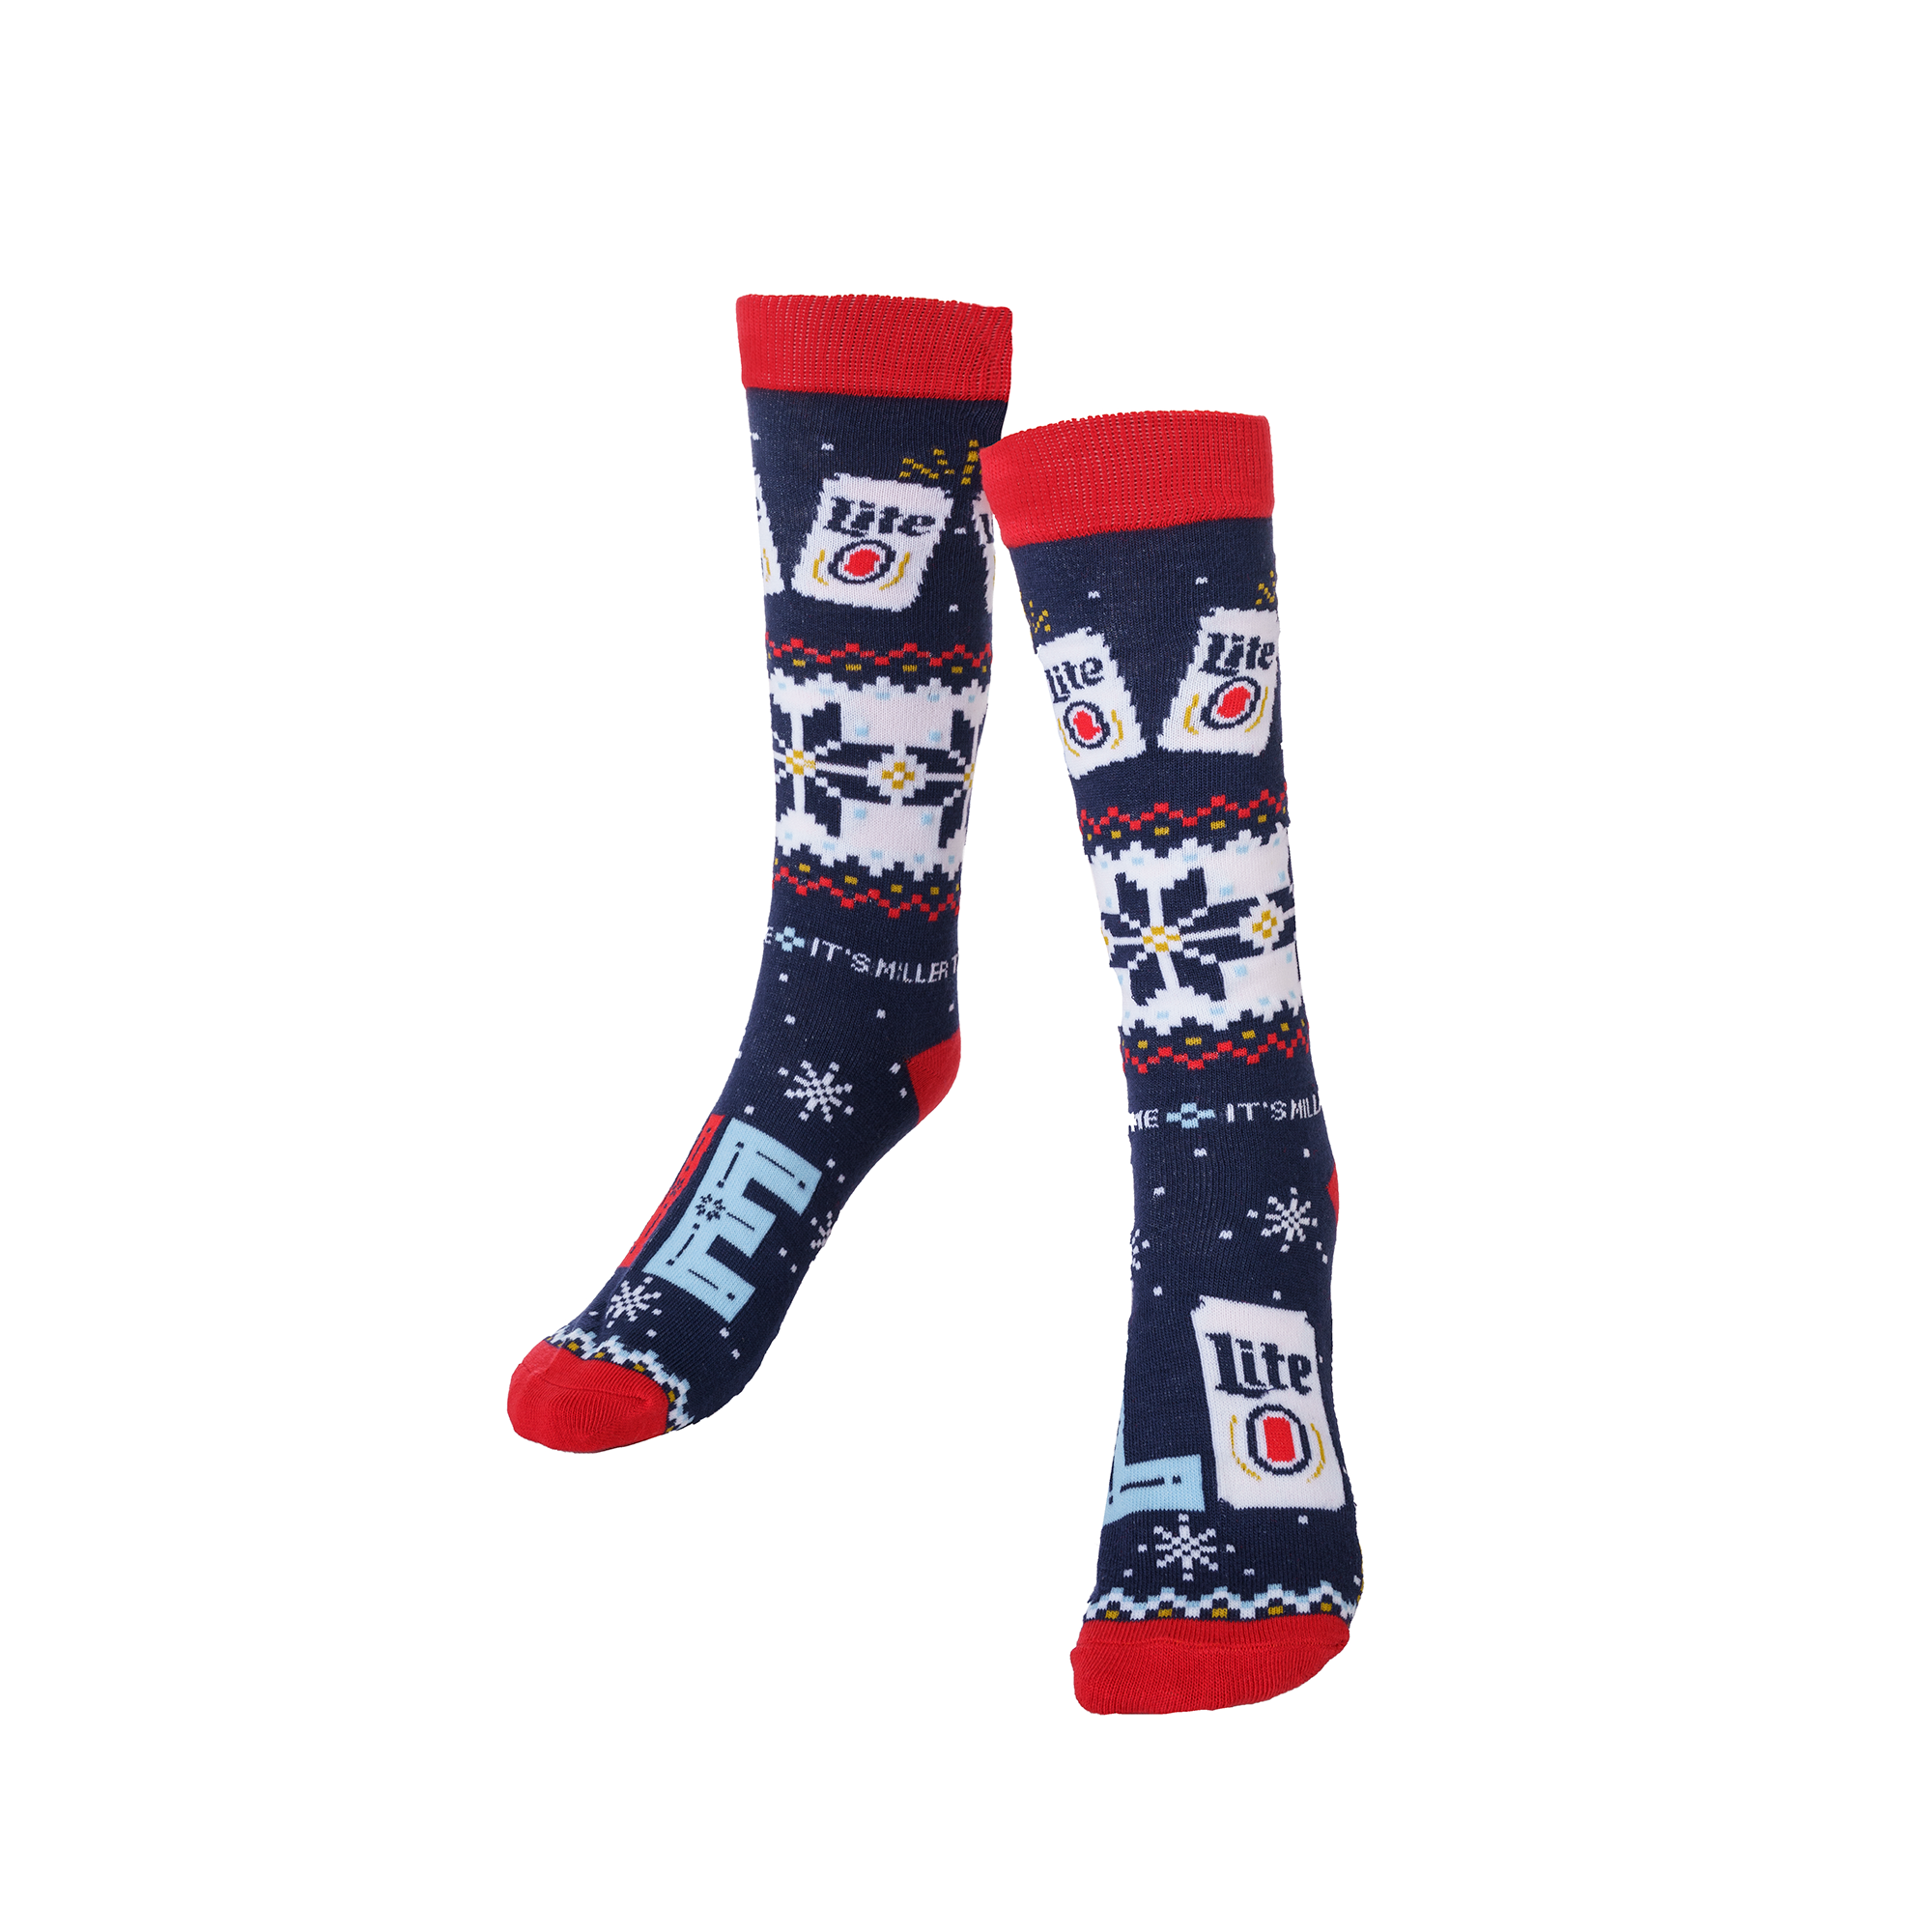 MILLER LITE UGLY SWEATER KNIT SOCKS